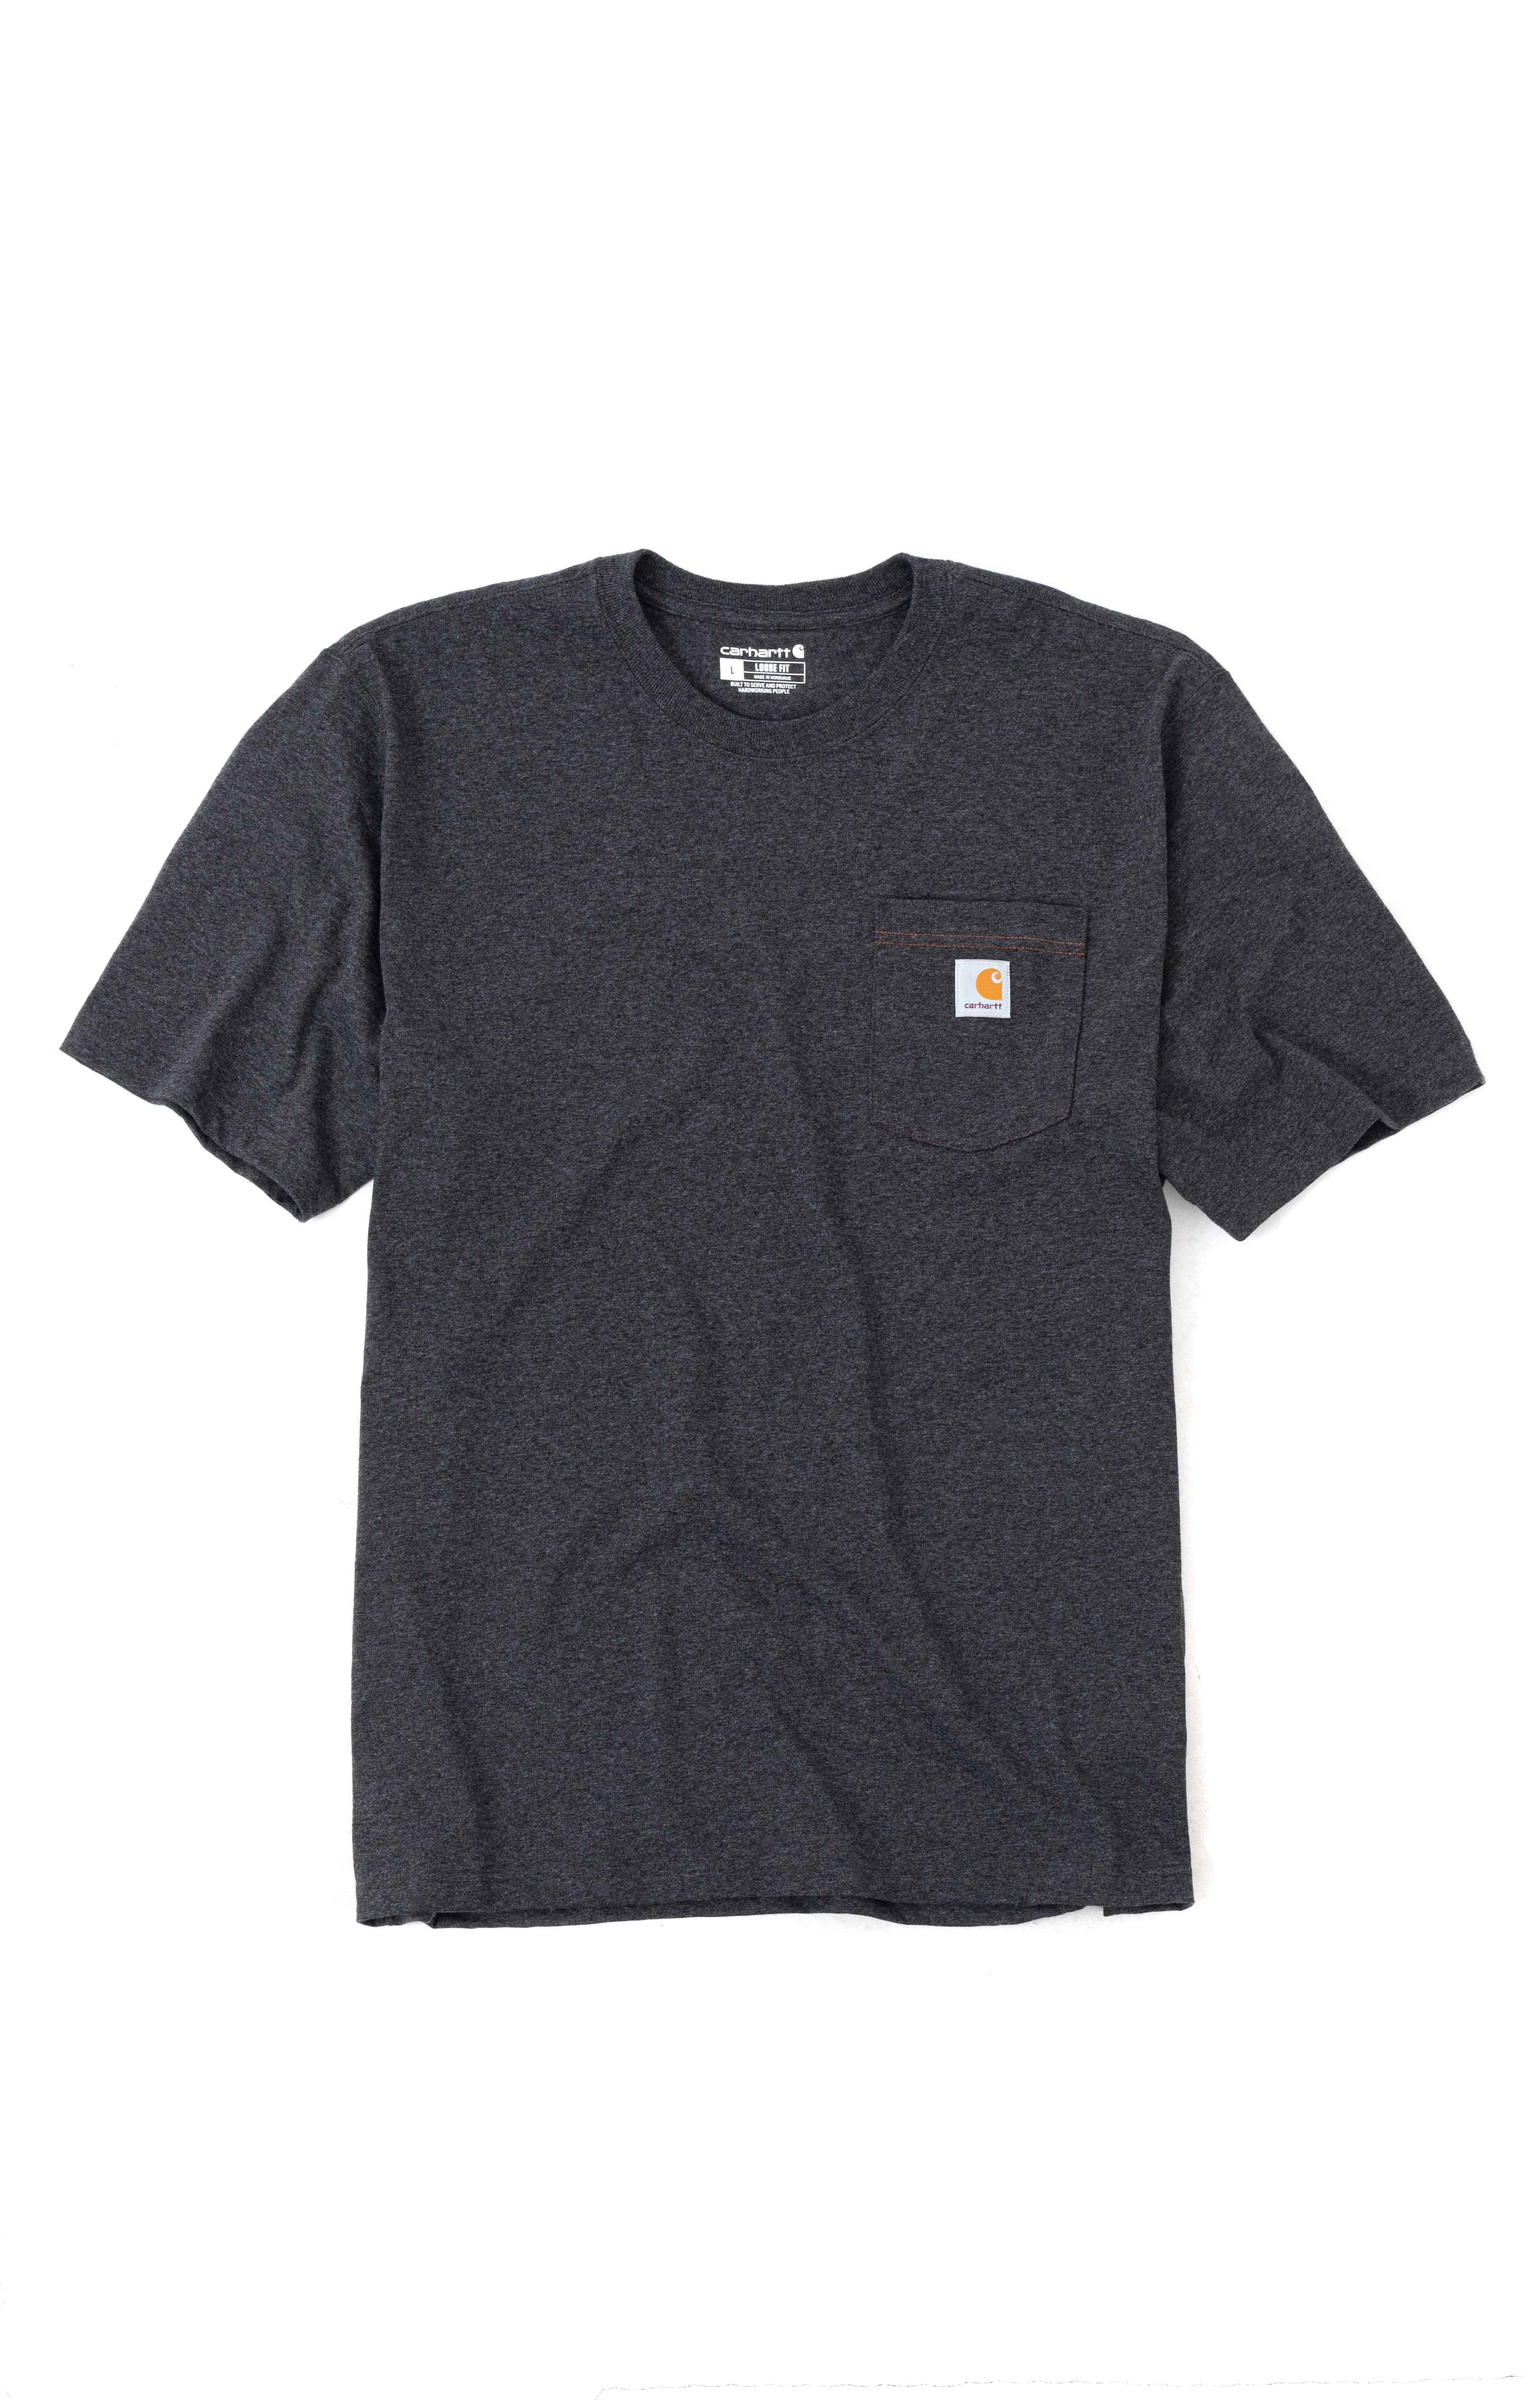 (104608) Loose Fit HW S/S Pocket Railroad Graphic T-Shirt - Carbon Heather  2